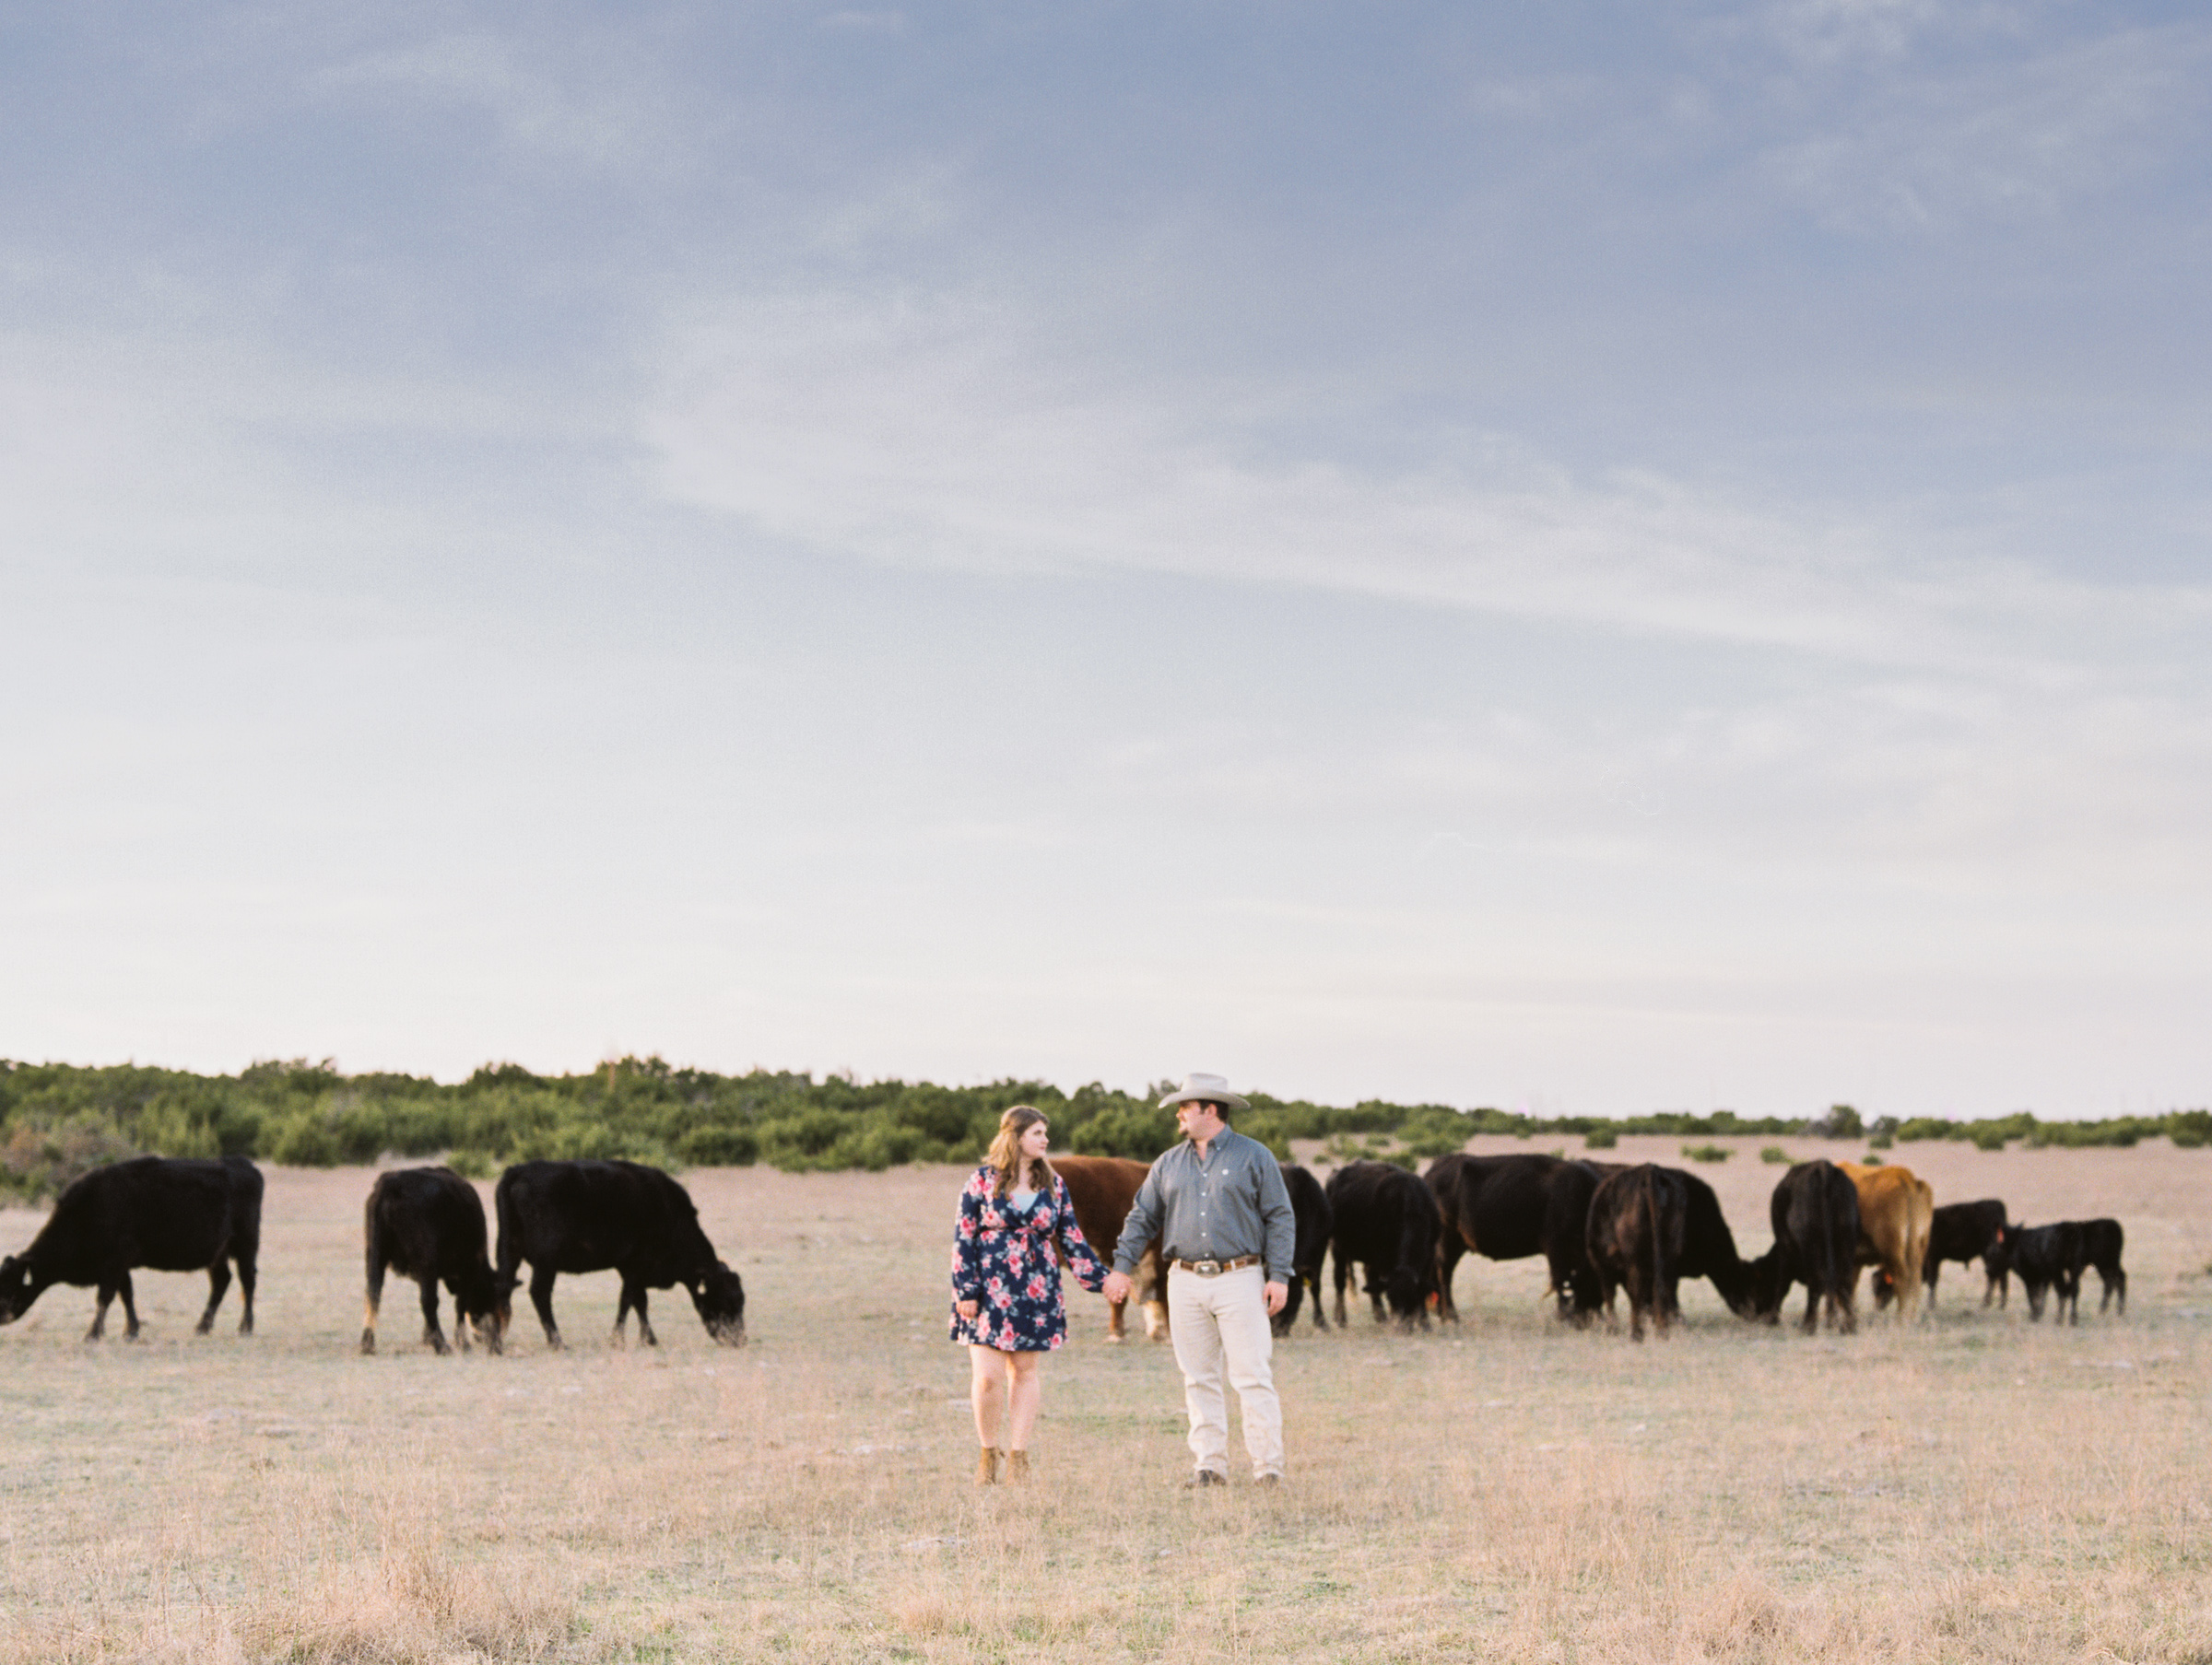 Kyle & Jamison | West Texas Engagement Session | Film Engagement Photos | britnidean.com